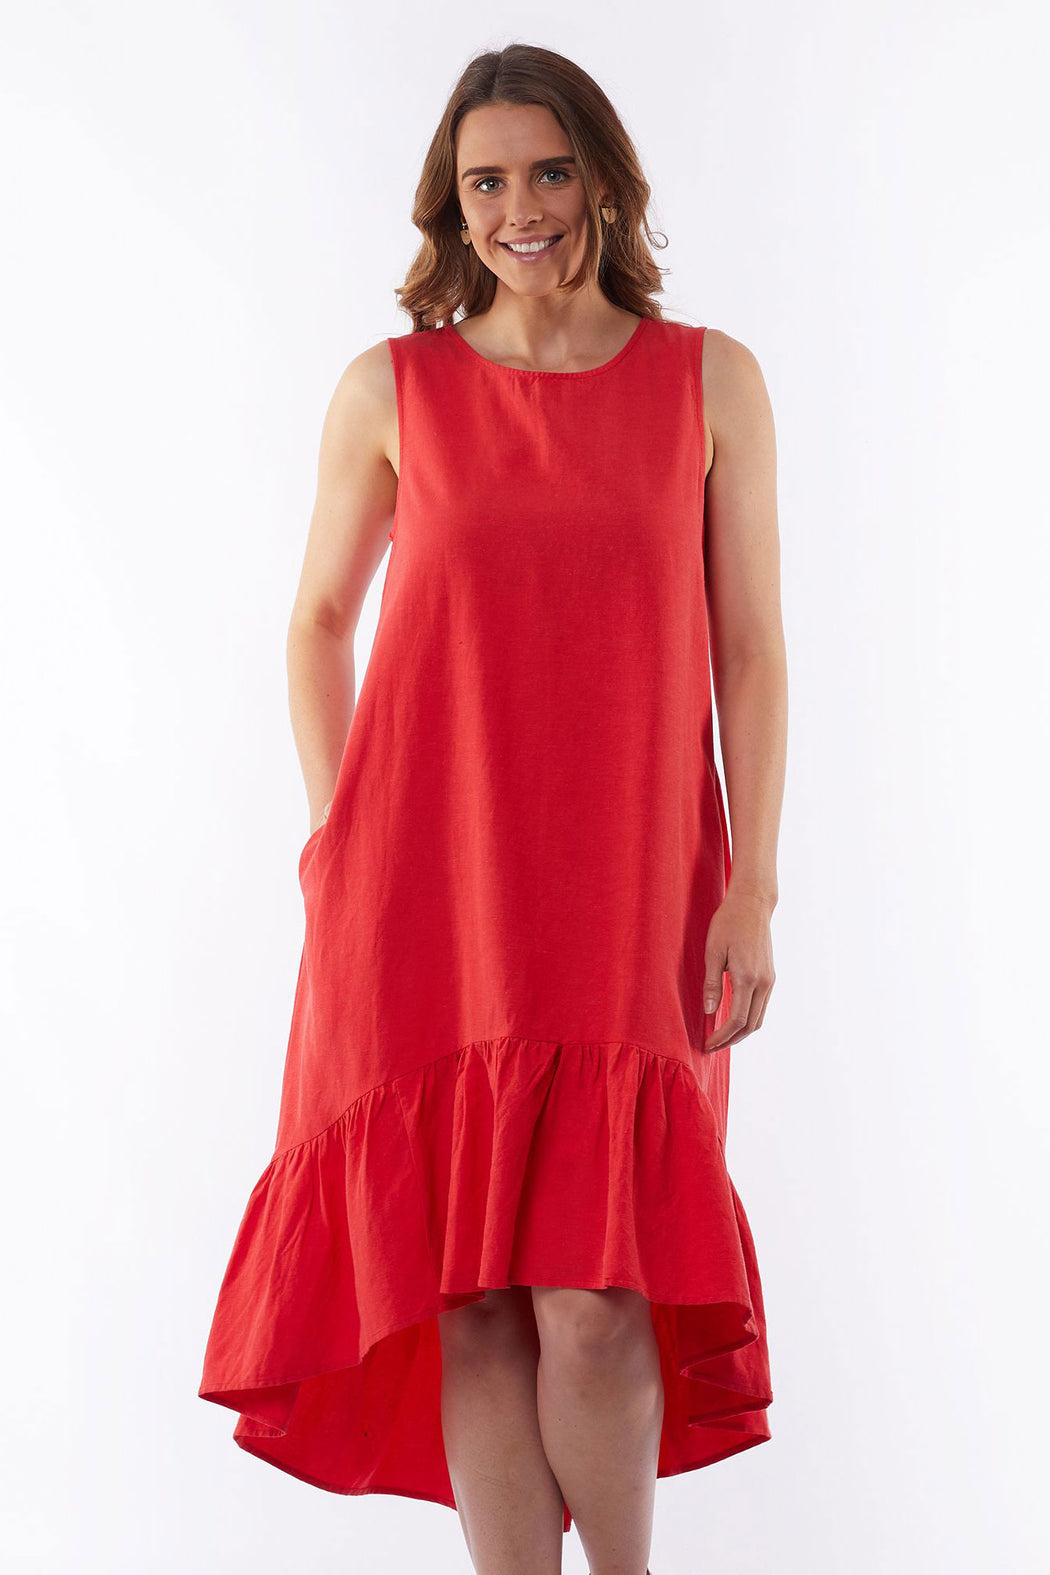 Elm Jasmine Dress - Red | Shop Elm at Wallace & Gibbs NZ